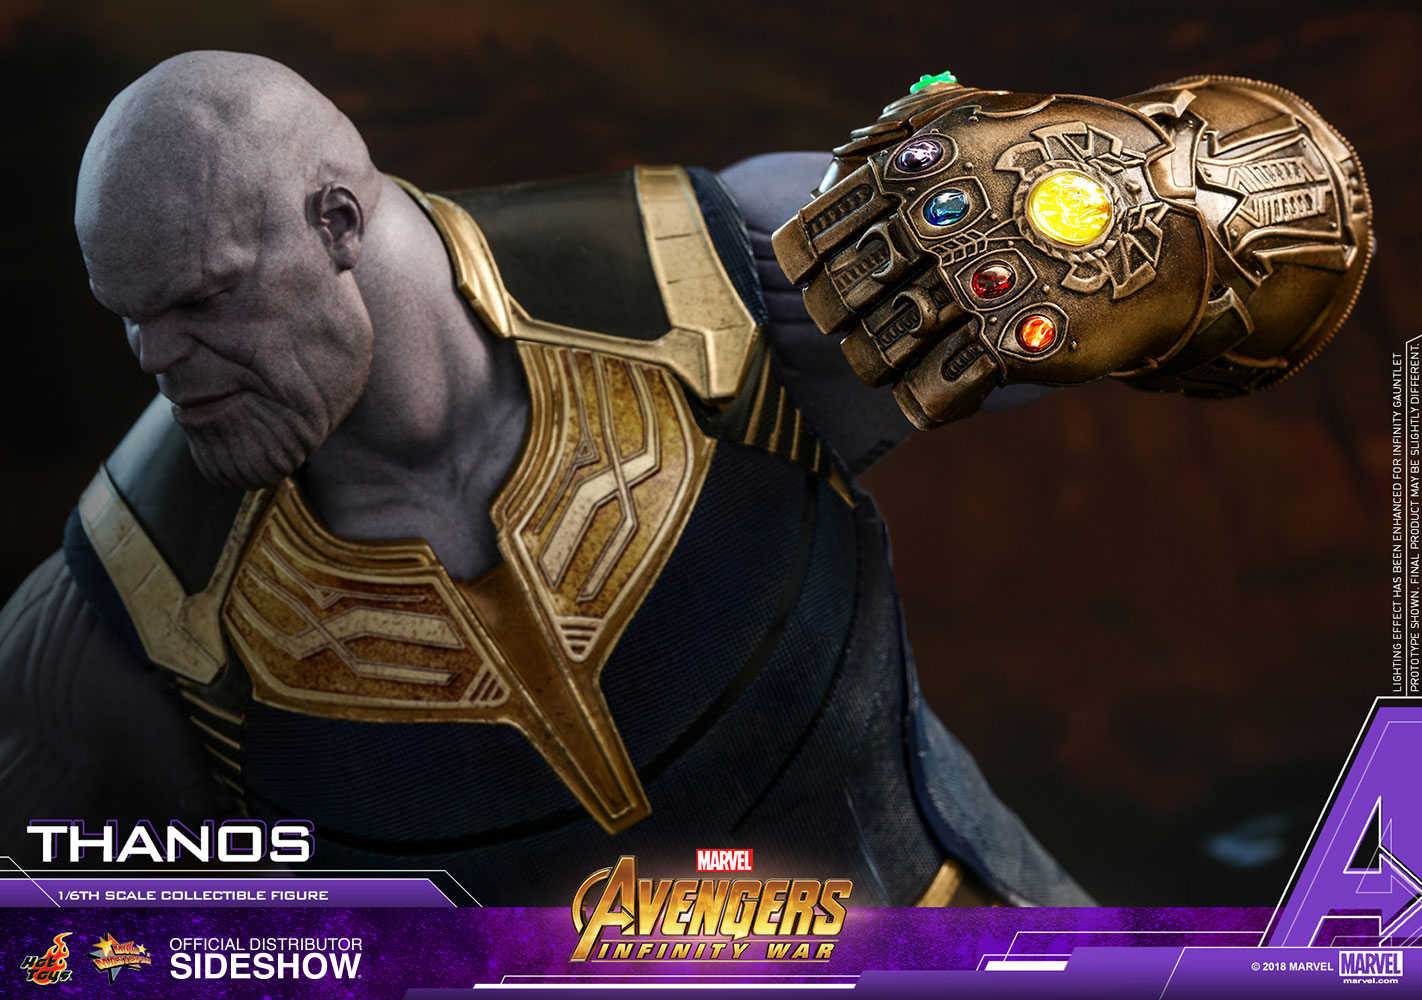 marvel-avengers-infinity-war-thanos-sixth-scale-figure-hot-toys-903429-14